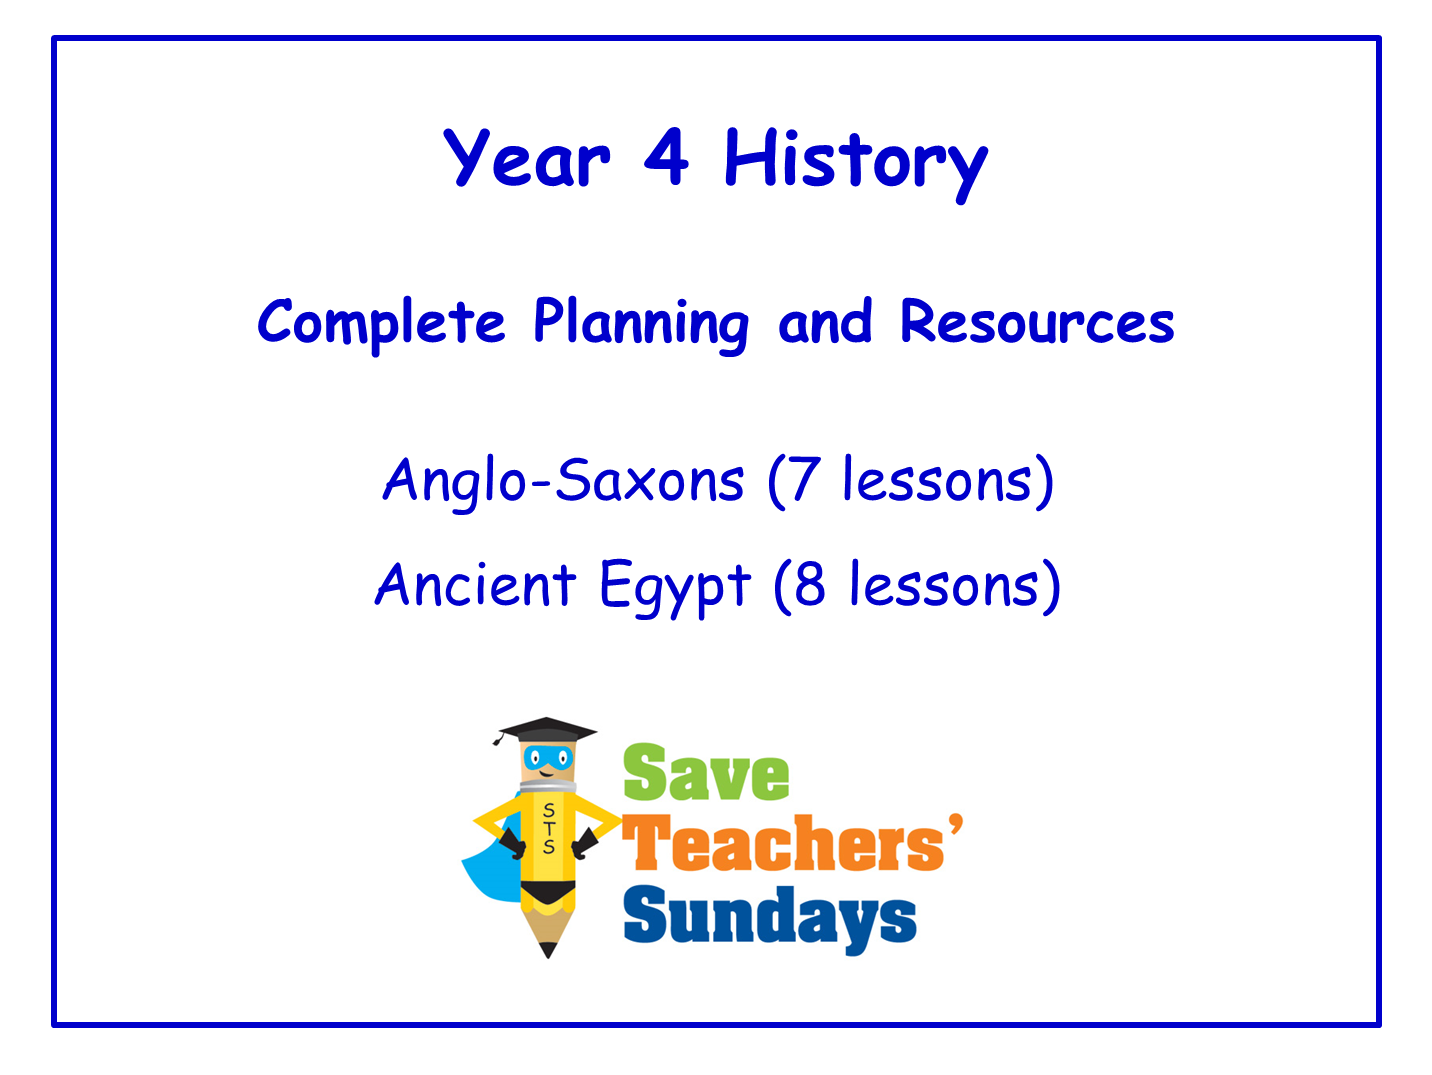 Year 4 History Planning and Resources